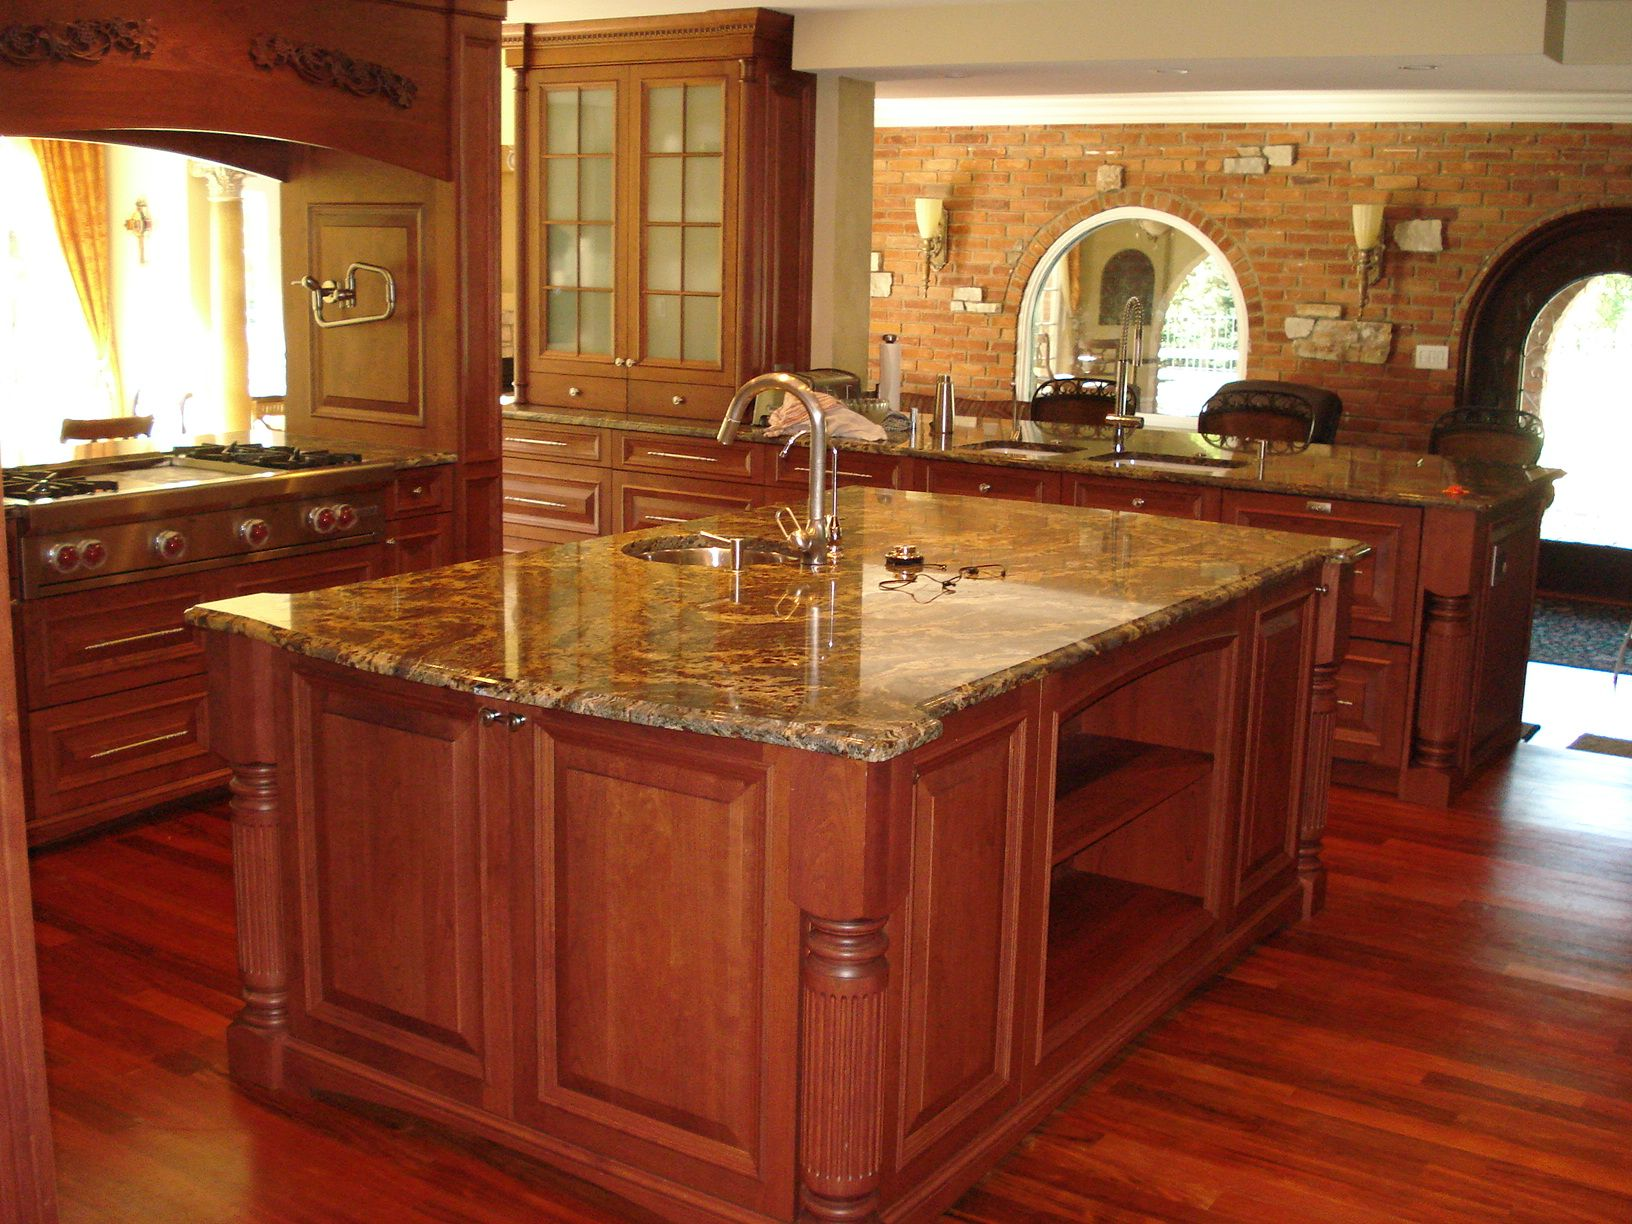 17 best images about counter on pinterest | countertops, in